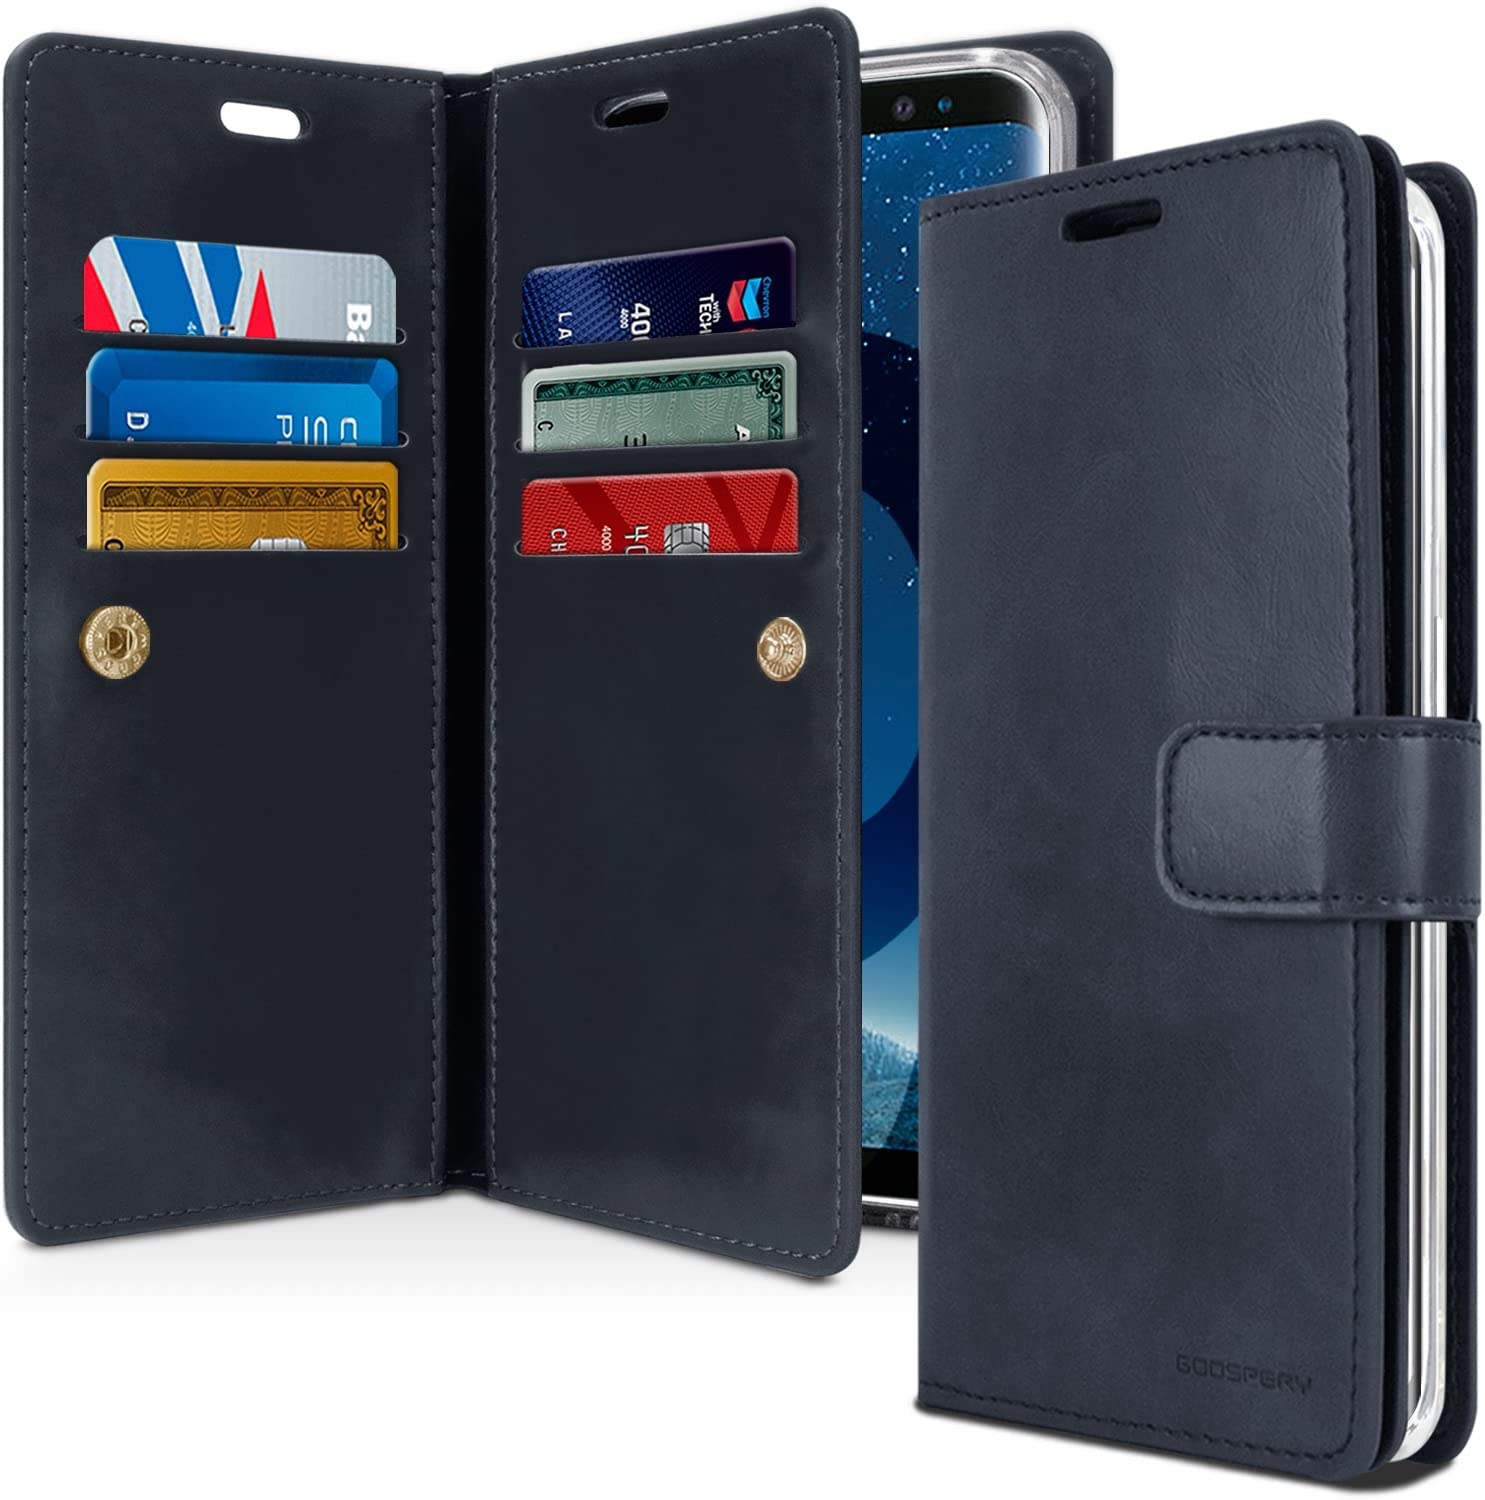 Goospery Mansoor Wallet for Samsung Galaxy S9 Plus Case (2018) Double Sided Card Holder Flip Cover (Navy) S9P-Man-NVY